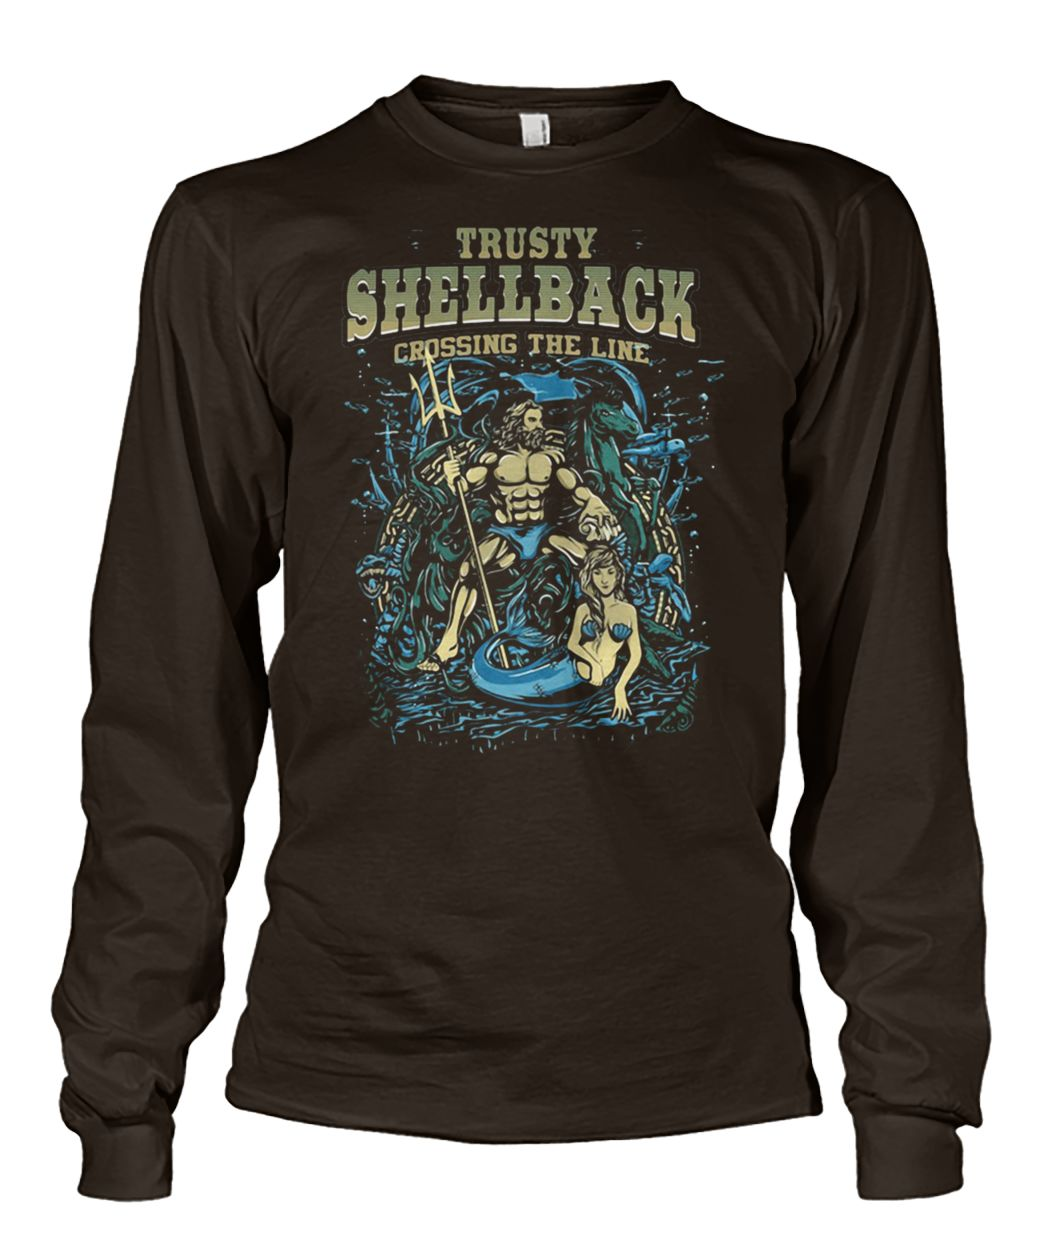 The US navy trusty shellback crossing the line equator military moral unisex long sleeve